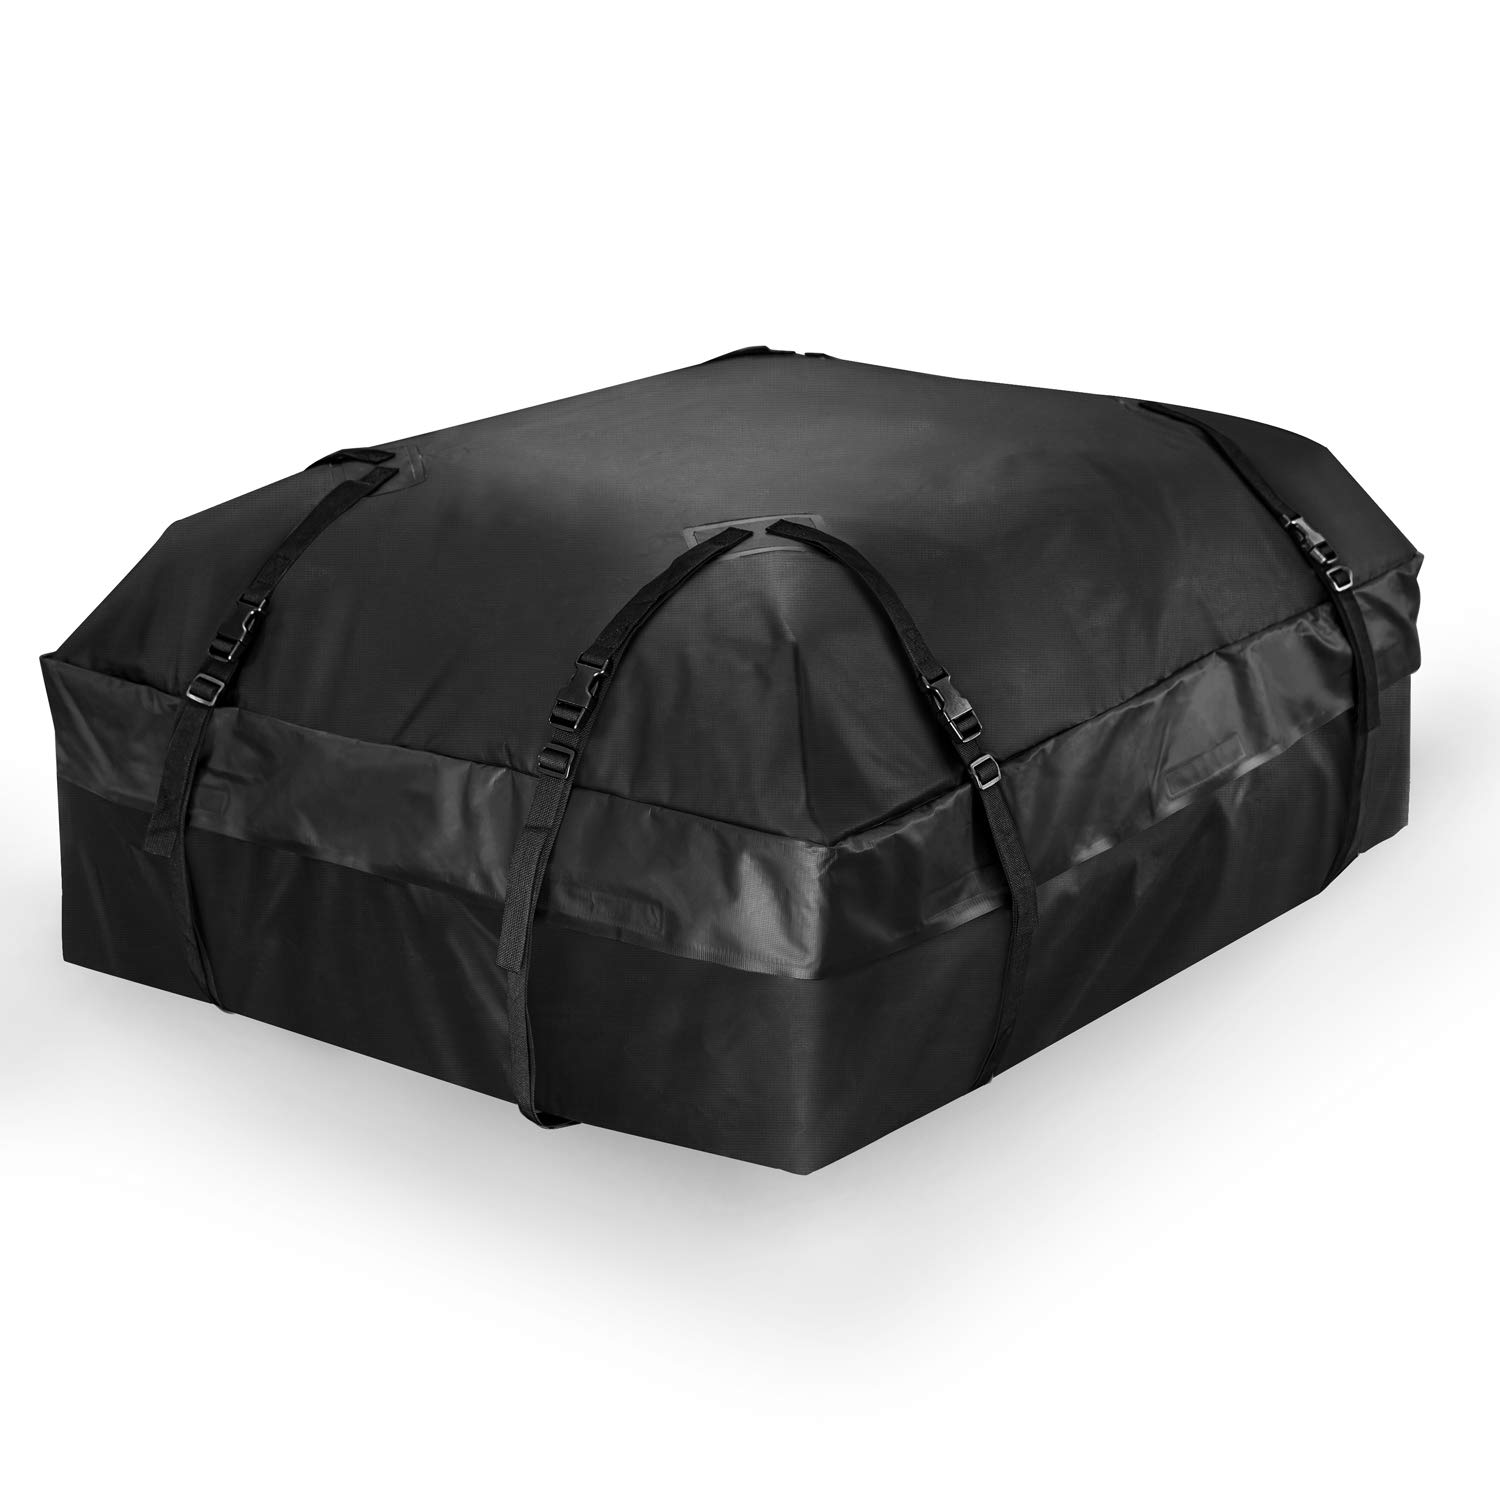 ISELECTOR Car Rooftop Cargo Carrier Bag, Waterproof Luggage Carrier Travel Bag 8 Widened Adjustable Straps Fits Vehicles with Side Rails or Cross Bars, 15 Cubic Feet, Black